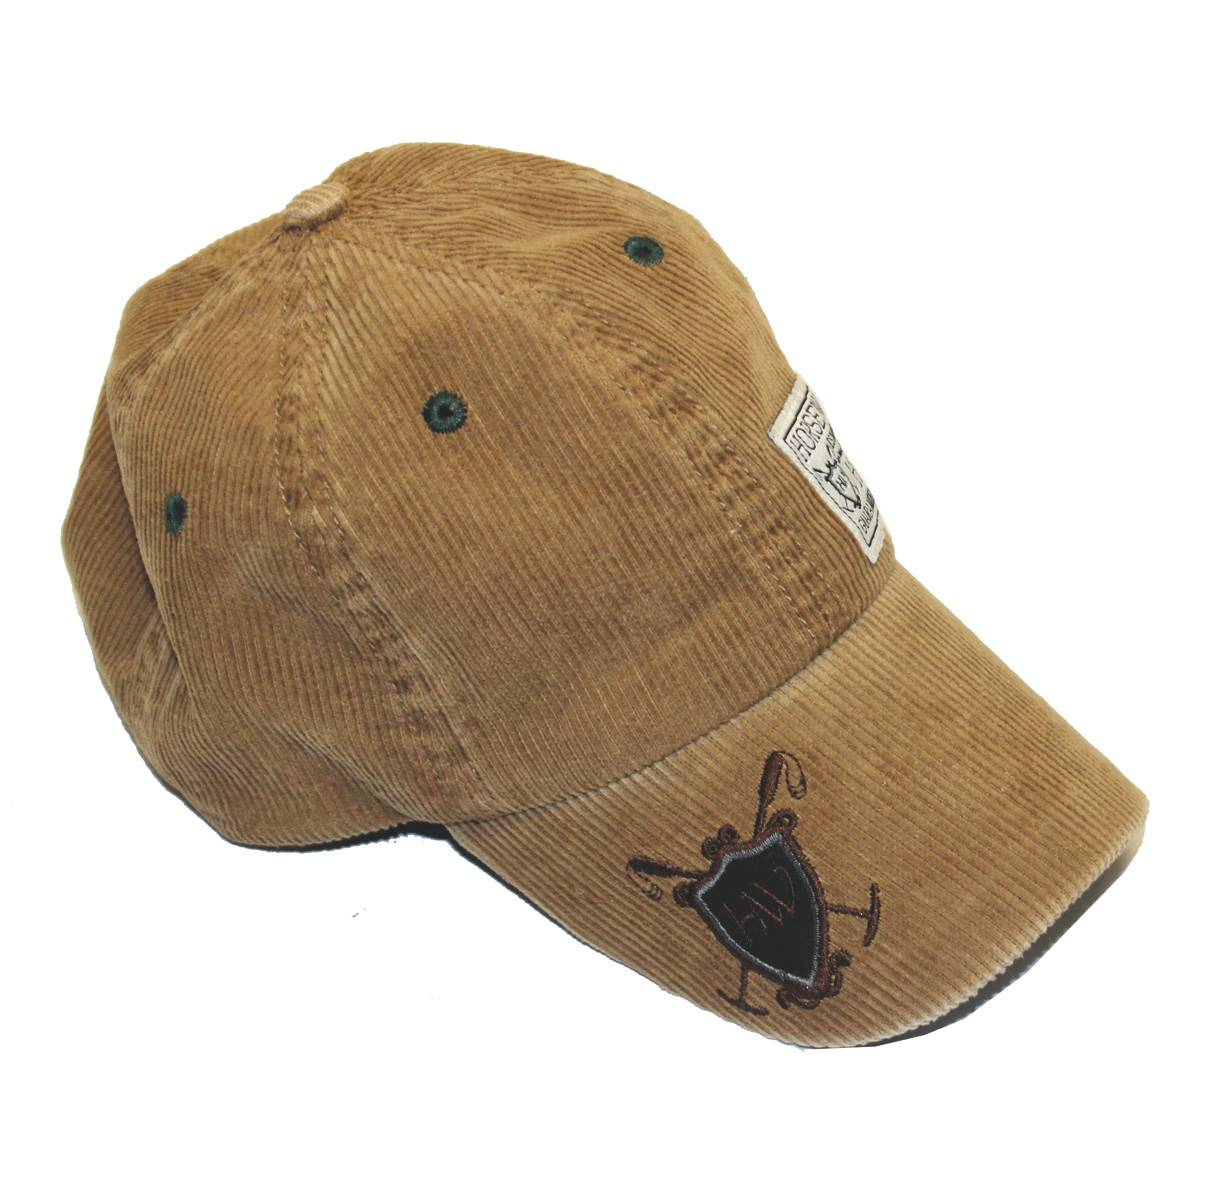 Horseware Polo Ladies' Corduroy Cap